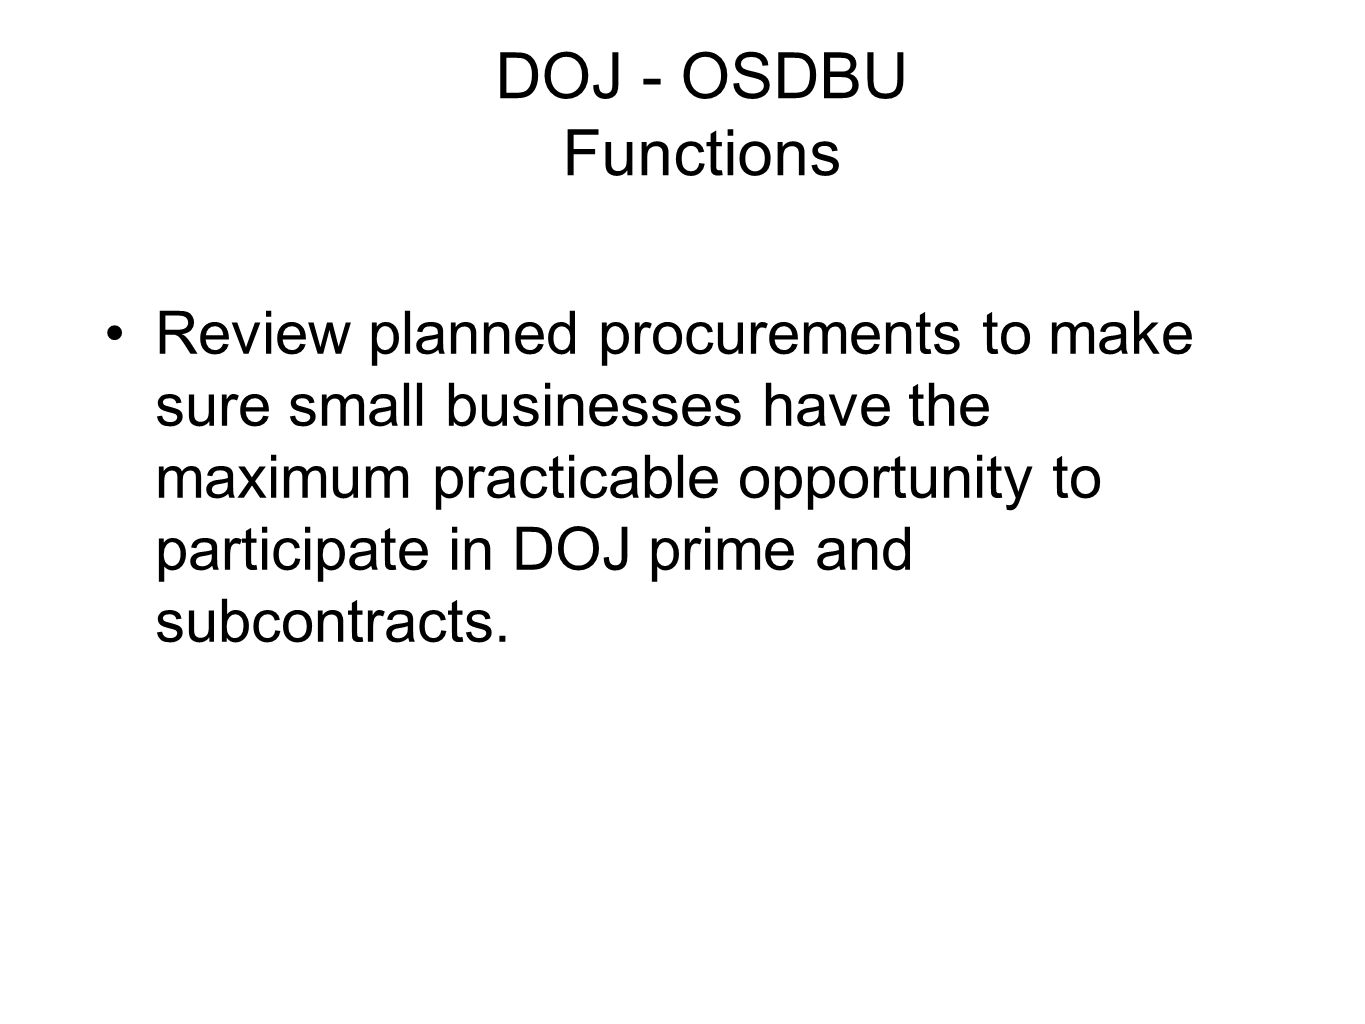 DOJ - OSDBU Functions Review planned procurements to make sure small businesses have the maximum practicable opportunity to participate in DOJ prime and subcontracts.